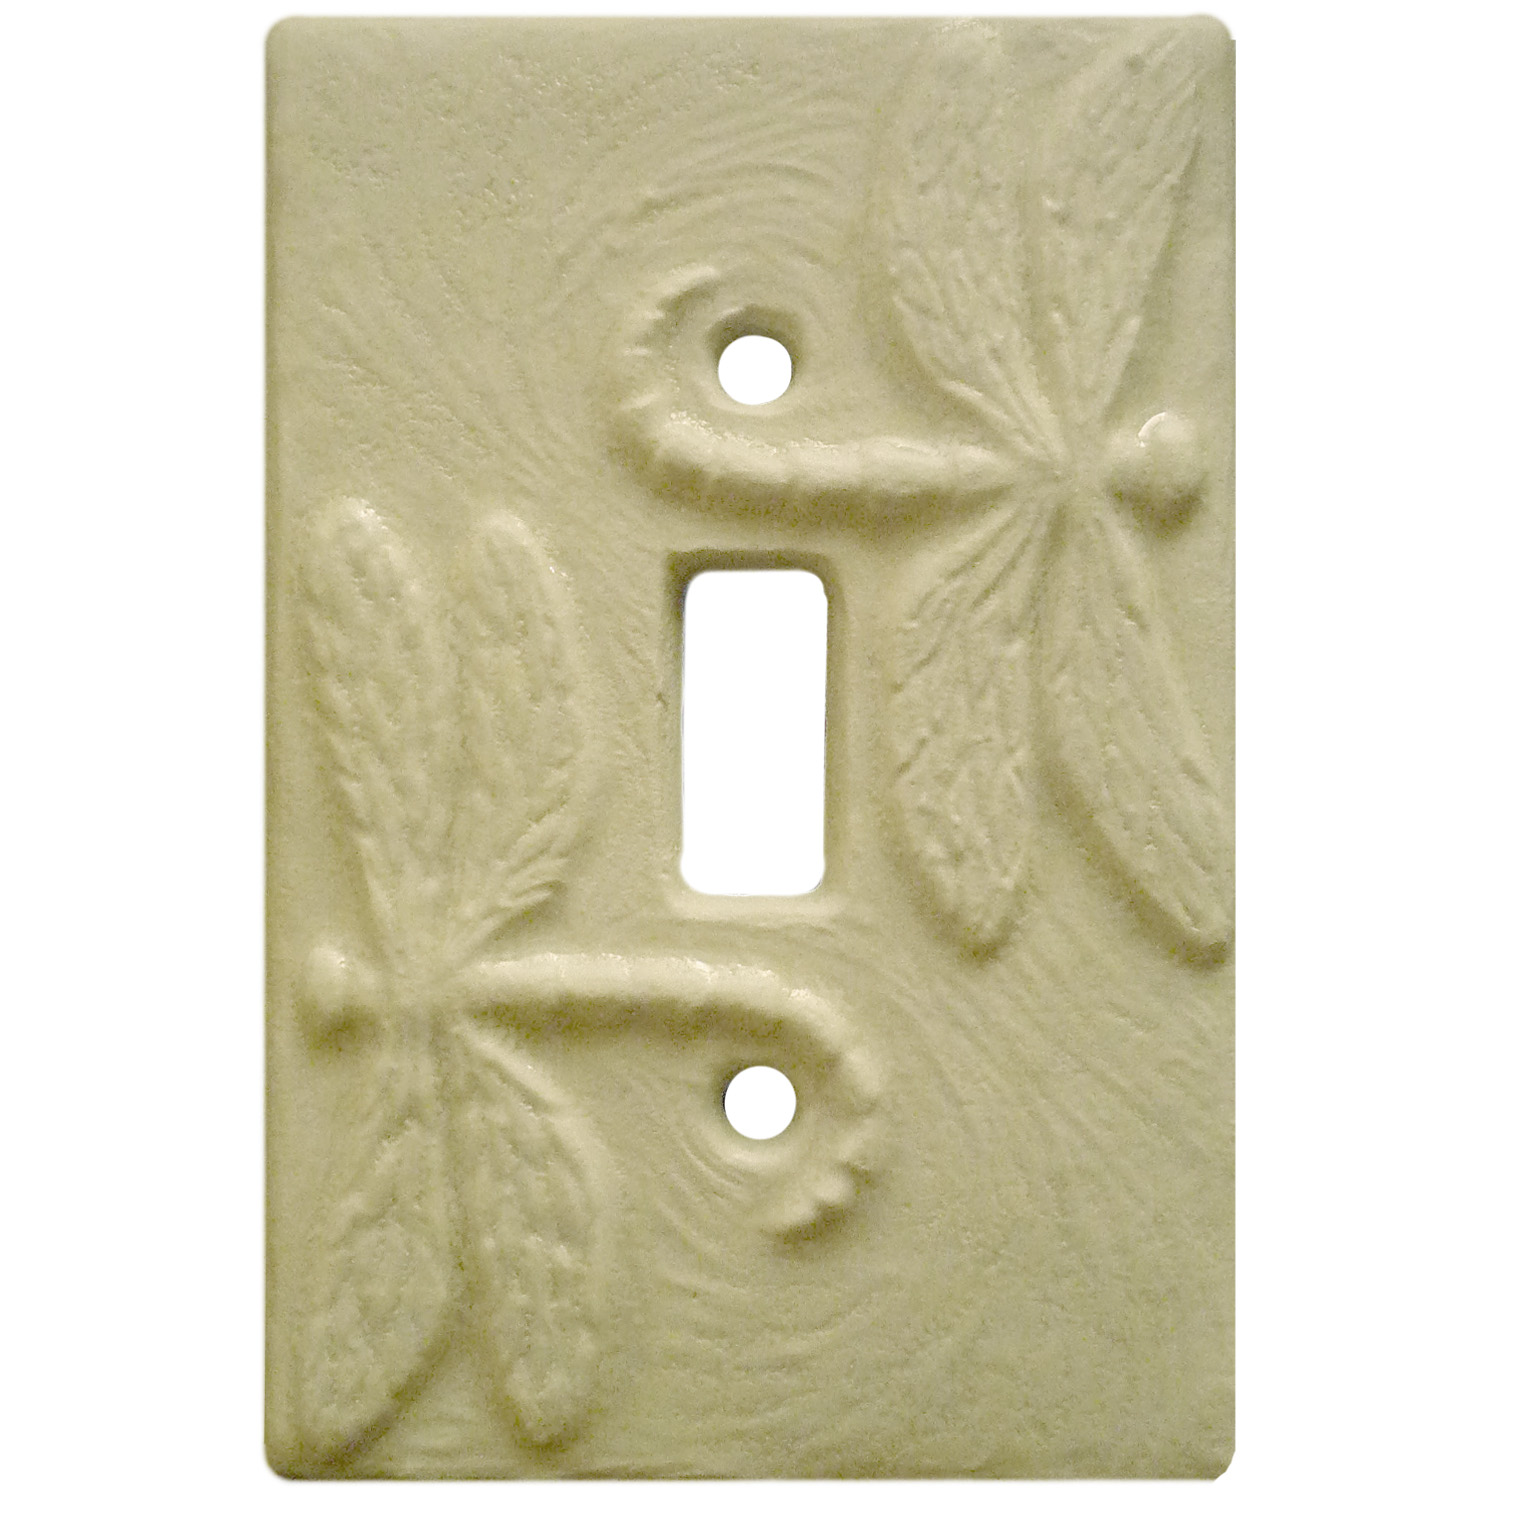 Rocker Light Switch Cover Dragonflies Ceramic Art Single Toggle Light Switch Cover In White